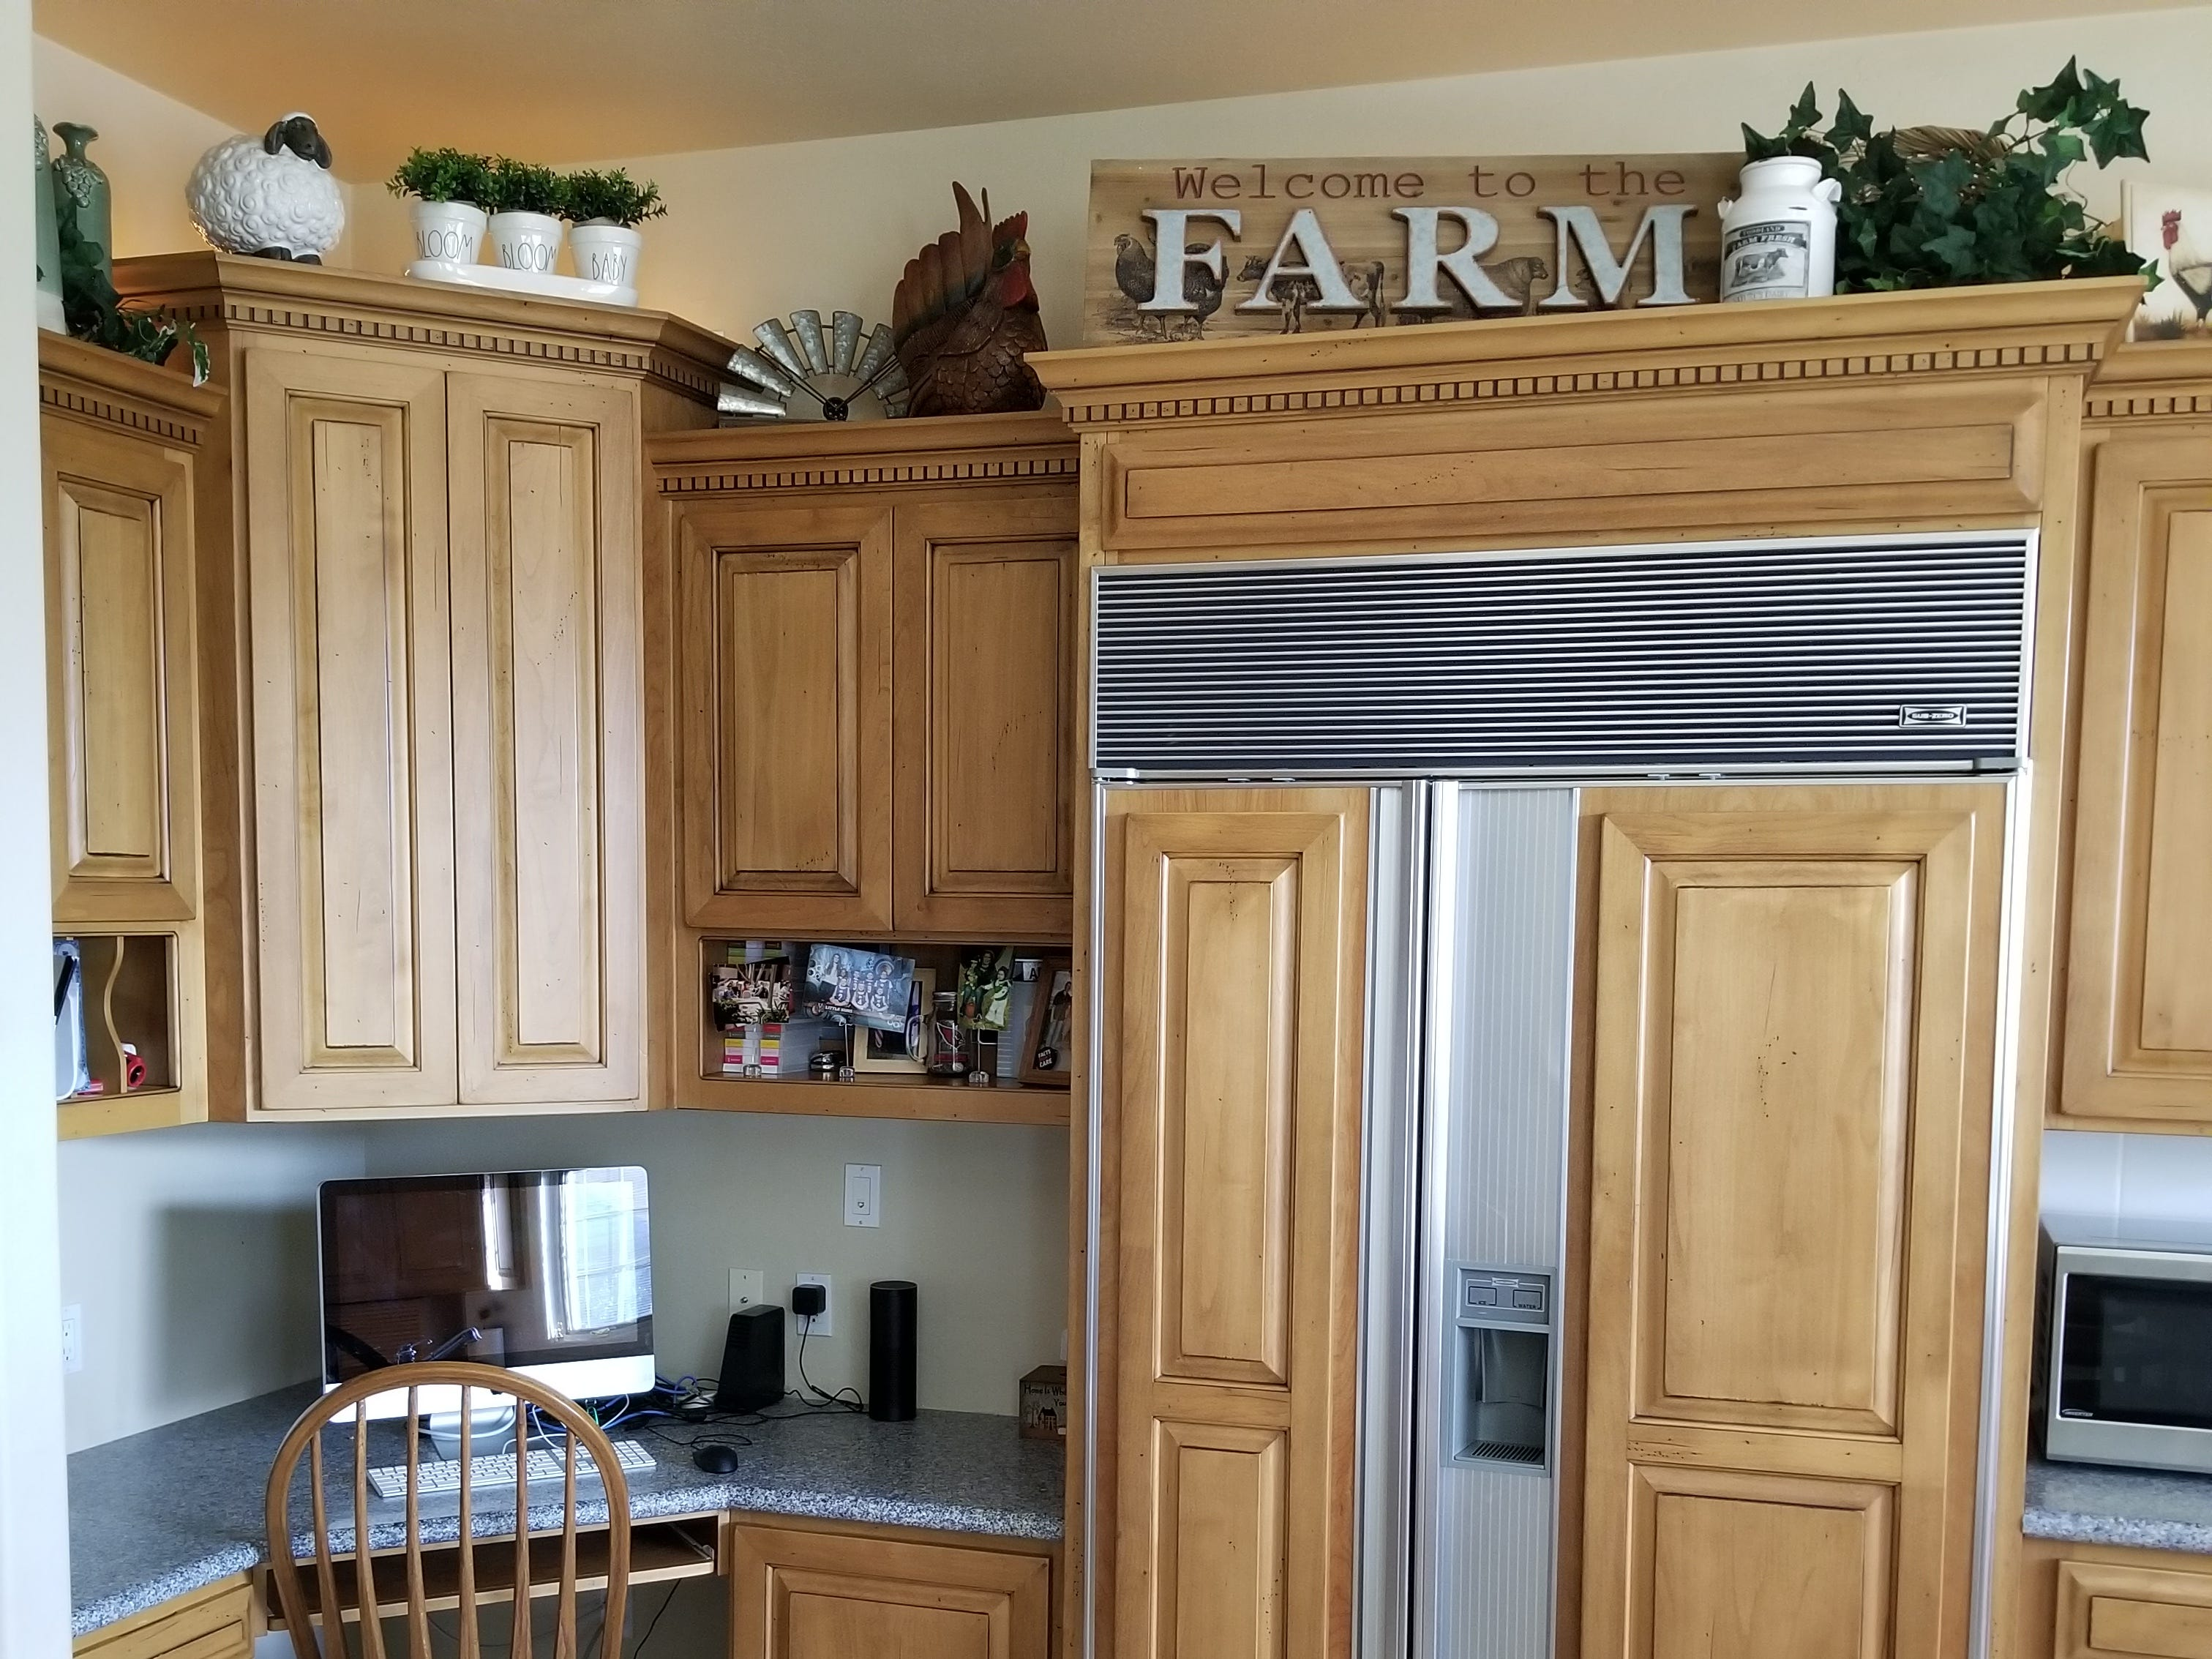 Sub-Zero refrigerator with cabinetry panels and corner desk opposite the pantry lend to a quick recipe find or checking on the sheep via a camera link to the barn.